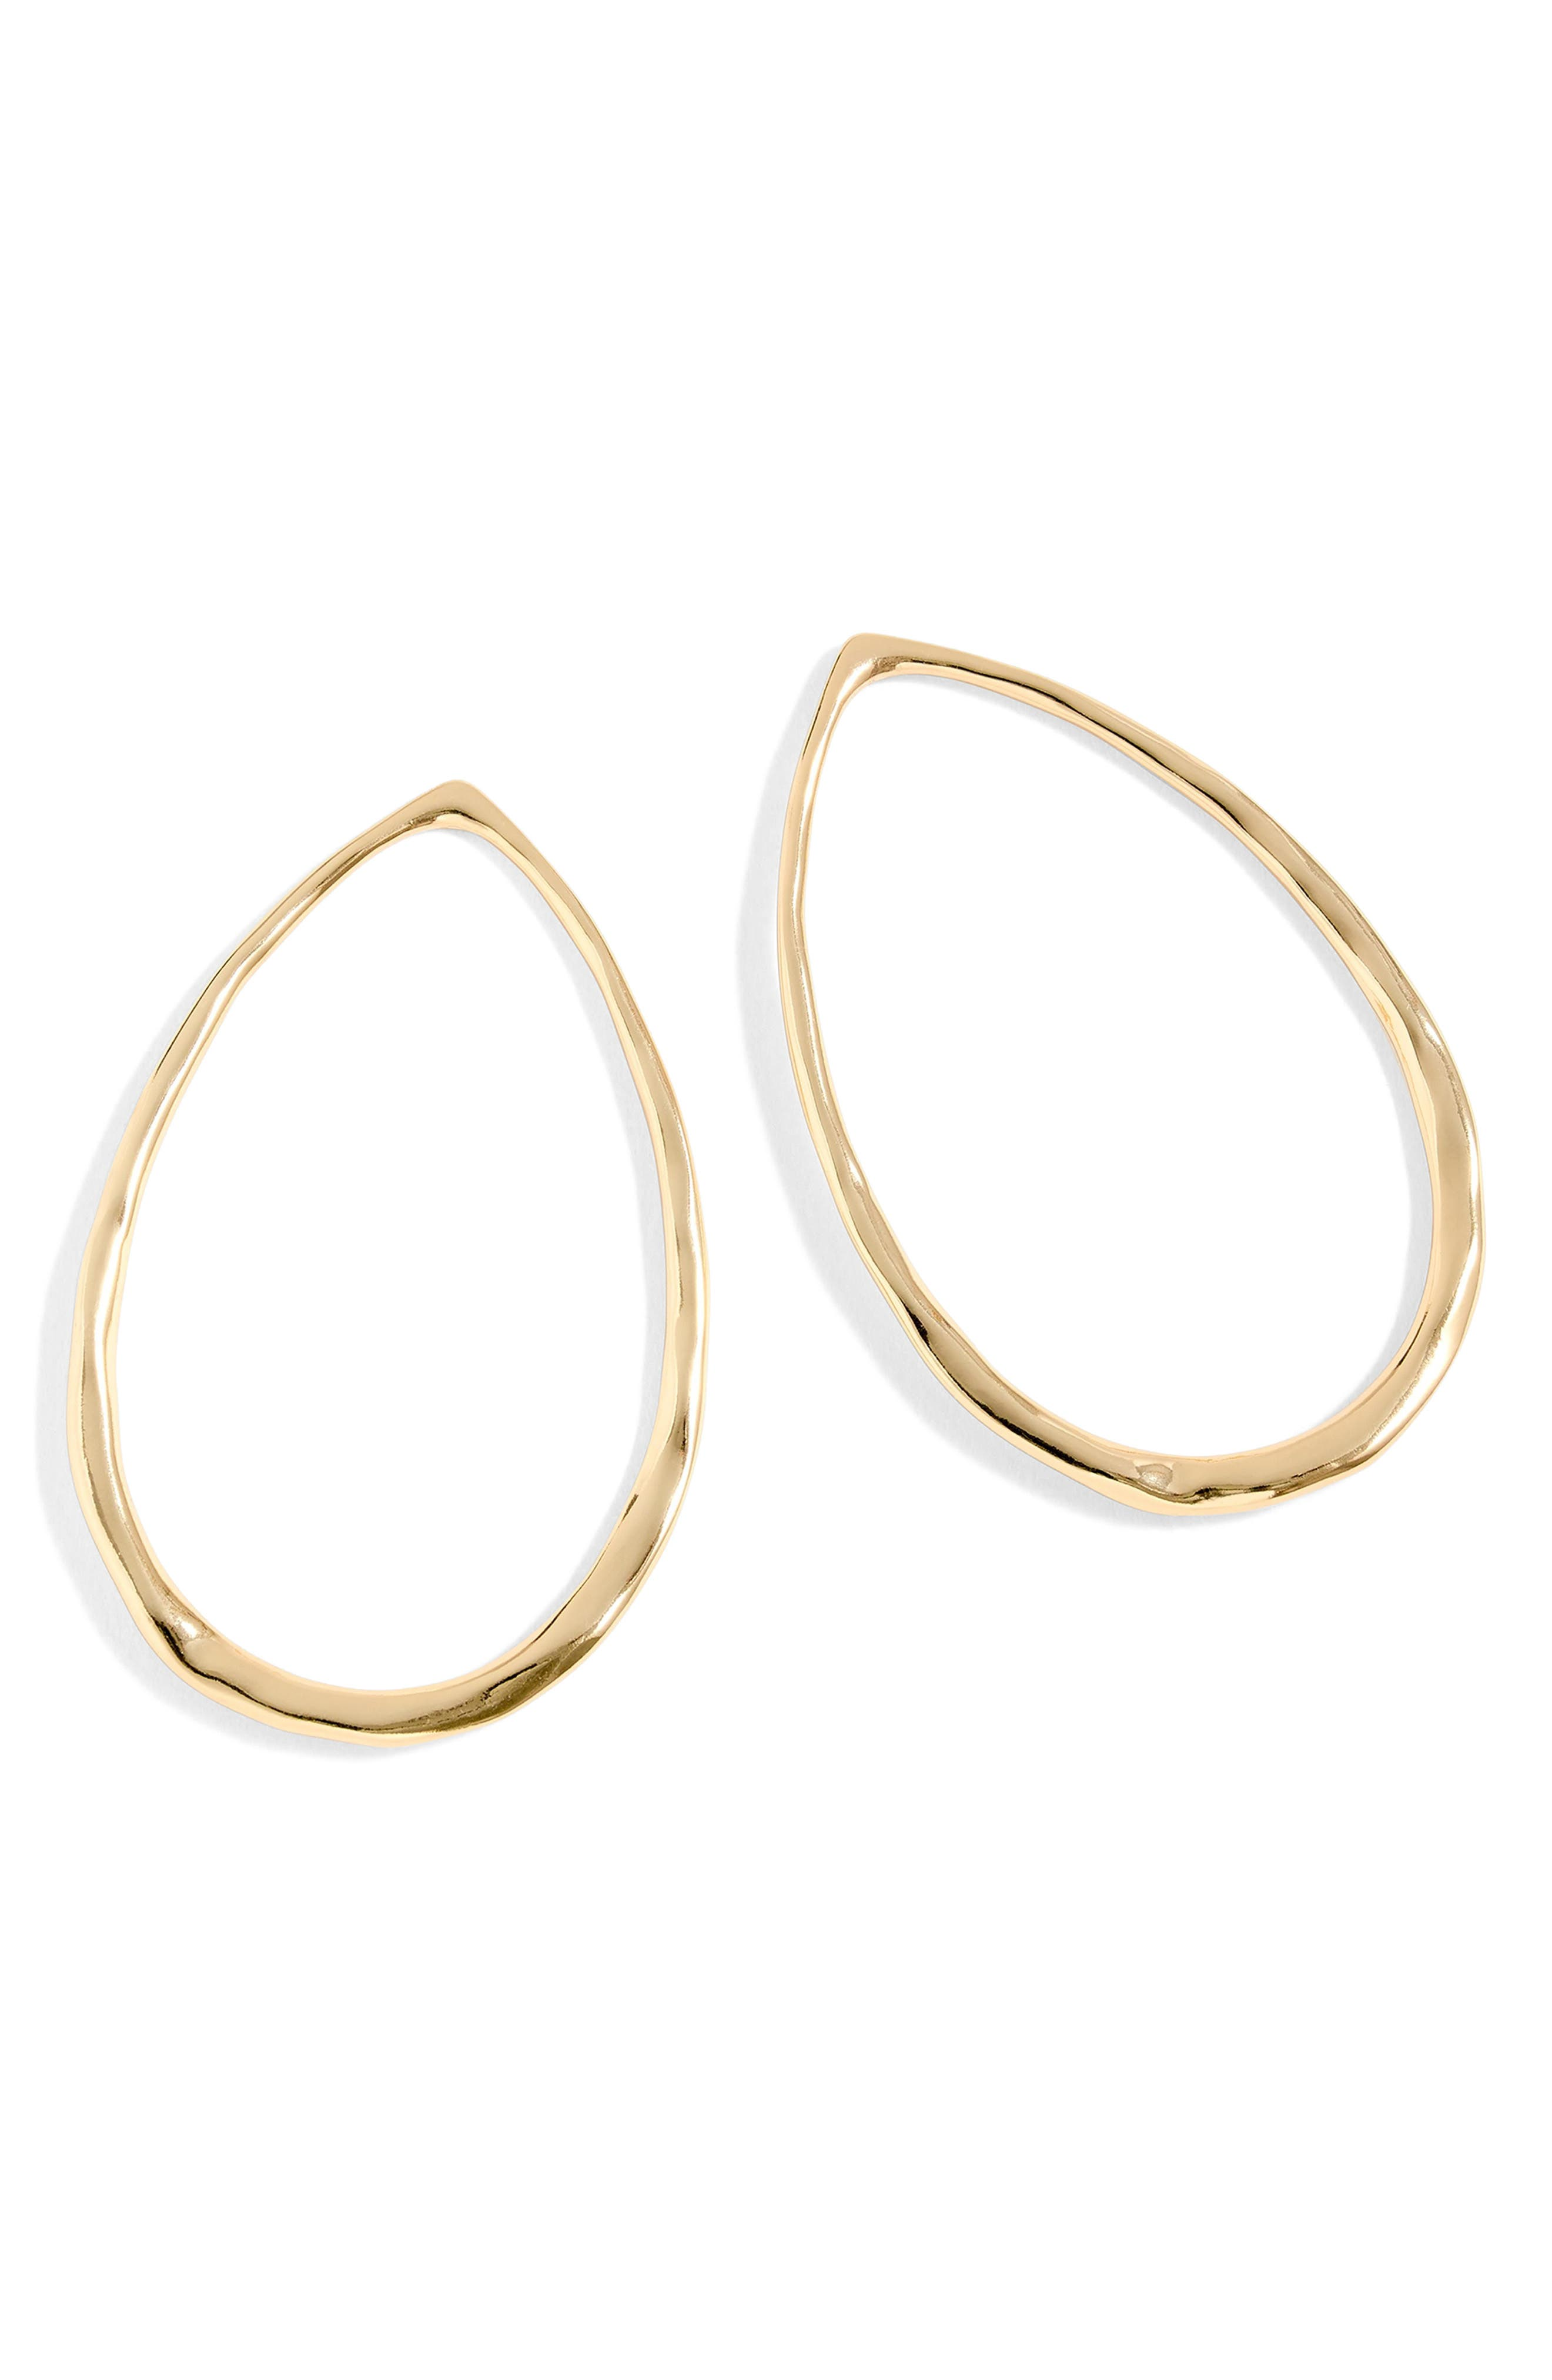 Hammered Teardrop Hoop Earrings,                             Main thumbnail 1, color,                             Burnished Gold